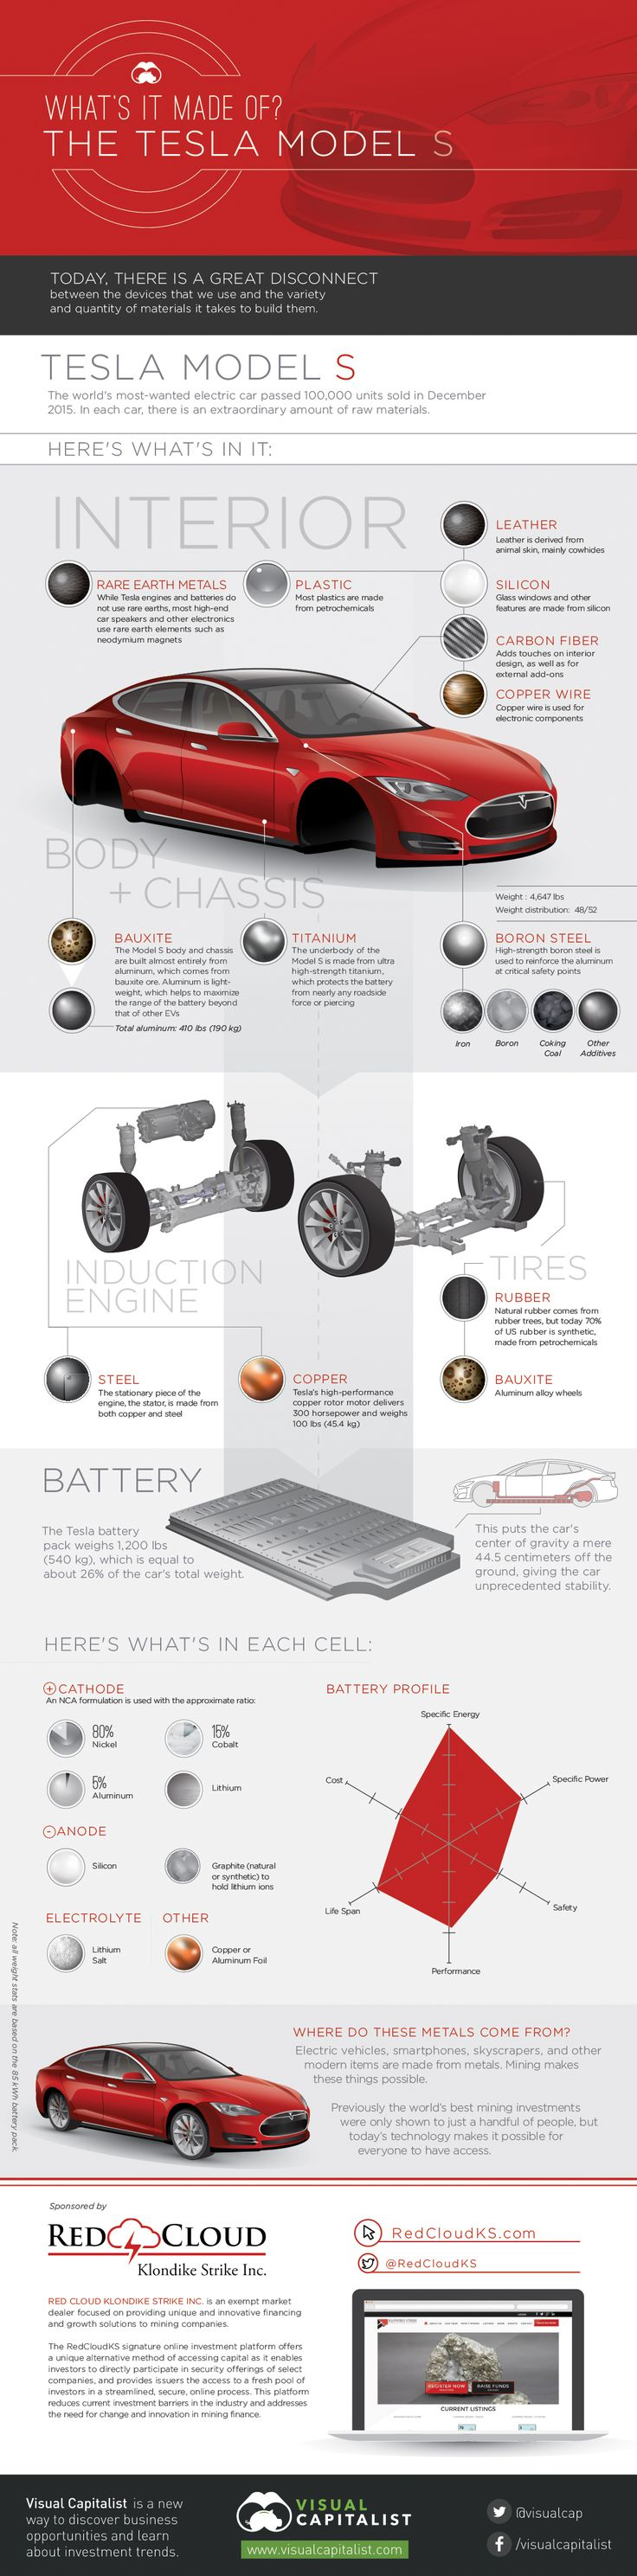 Raw materials in a Tesla Model S: http://evannex.com/blogs/news/112953413-tesla-model-s-vs-tesla-model-3-aluminum-vs-steel-infographic